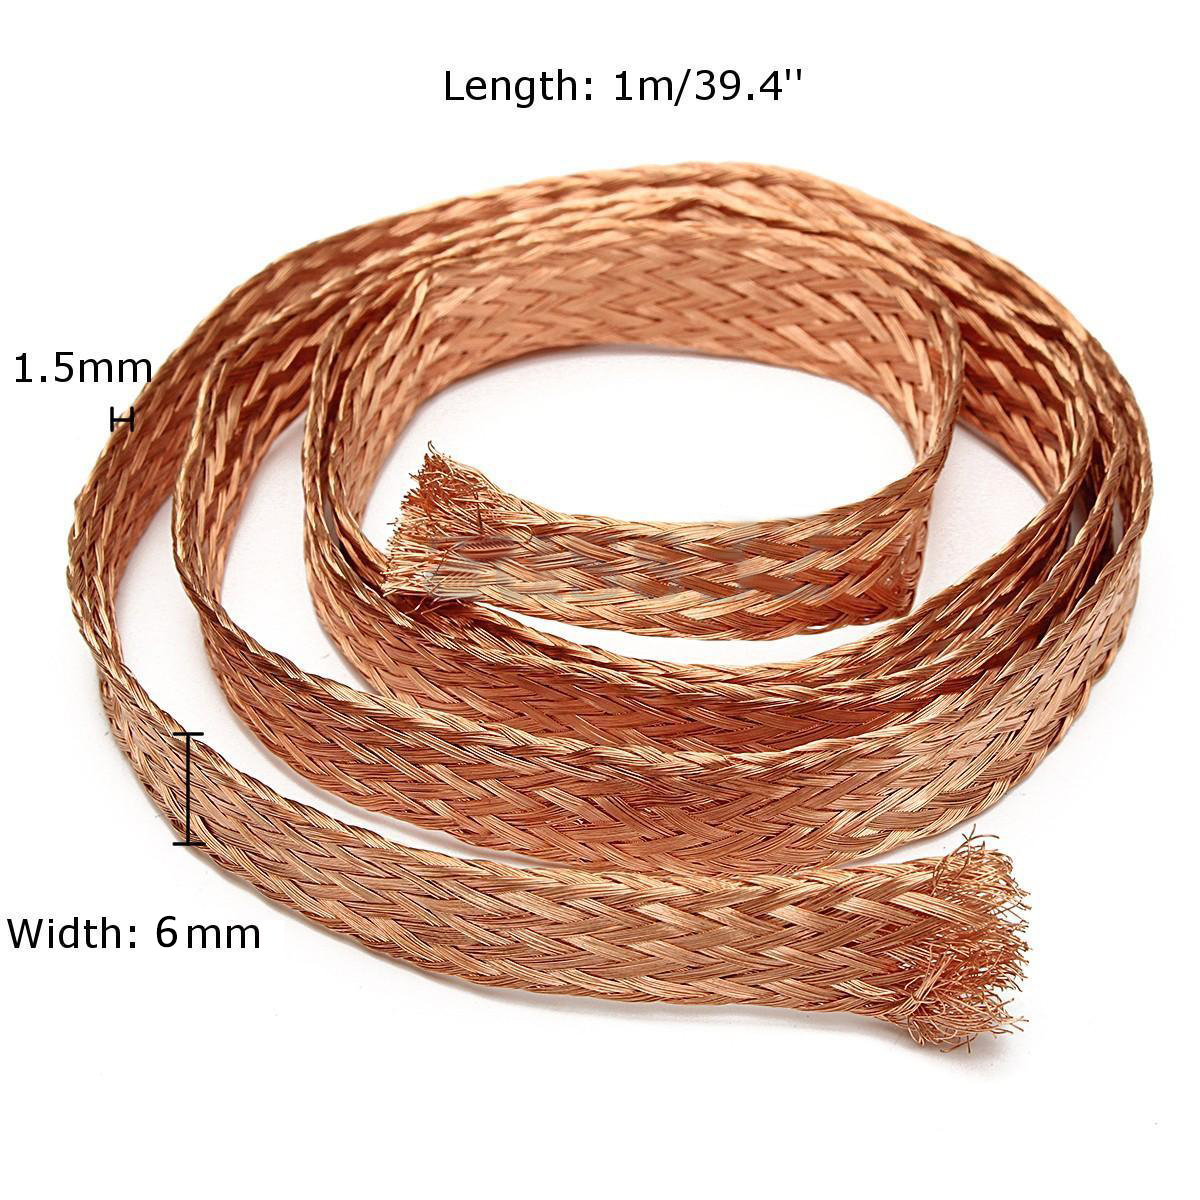 Mayitr Durable Pure Copper Flat Braid Cable Bare Copper Braid Wire Ground Lead 1m/3.3ft x 6mm  1m 15mm flat tinned copper braid sleeve screening tubular cable diy